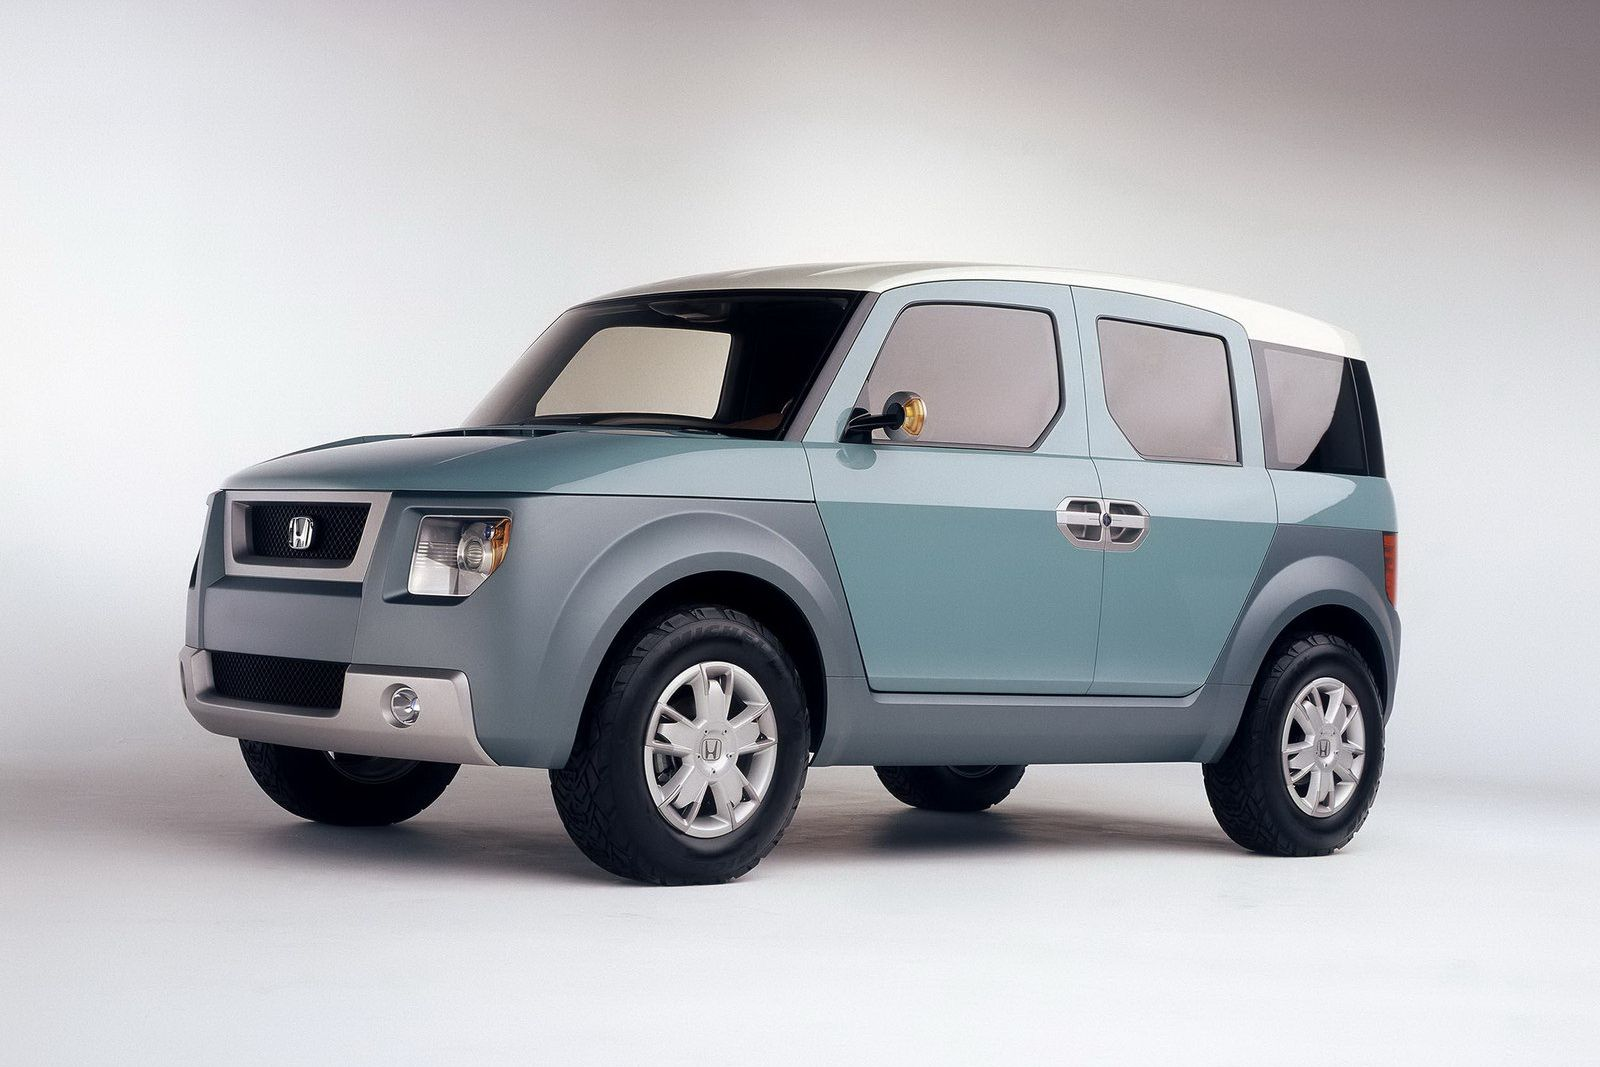 Honda To Terminate Element Crossover Next Year No Direct Successor Planned Carscoops Honda Element Honda Honda Models